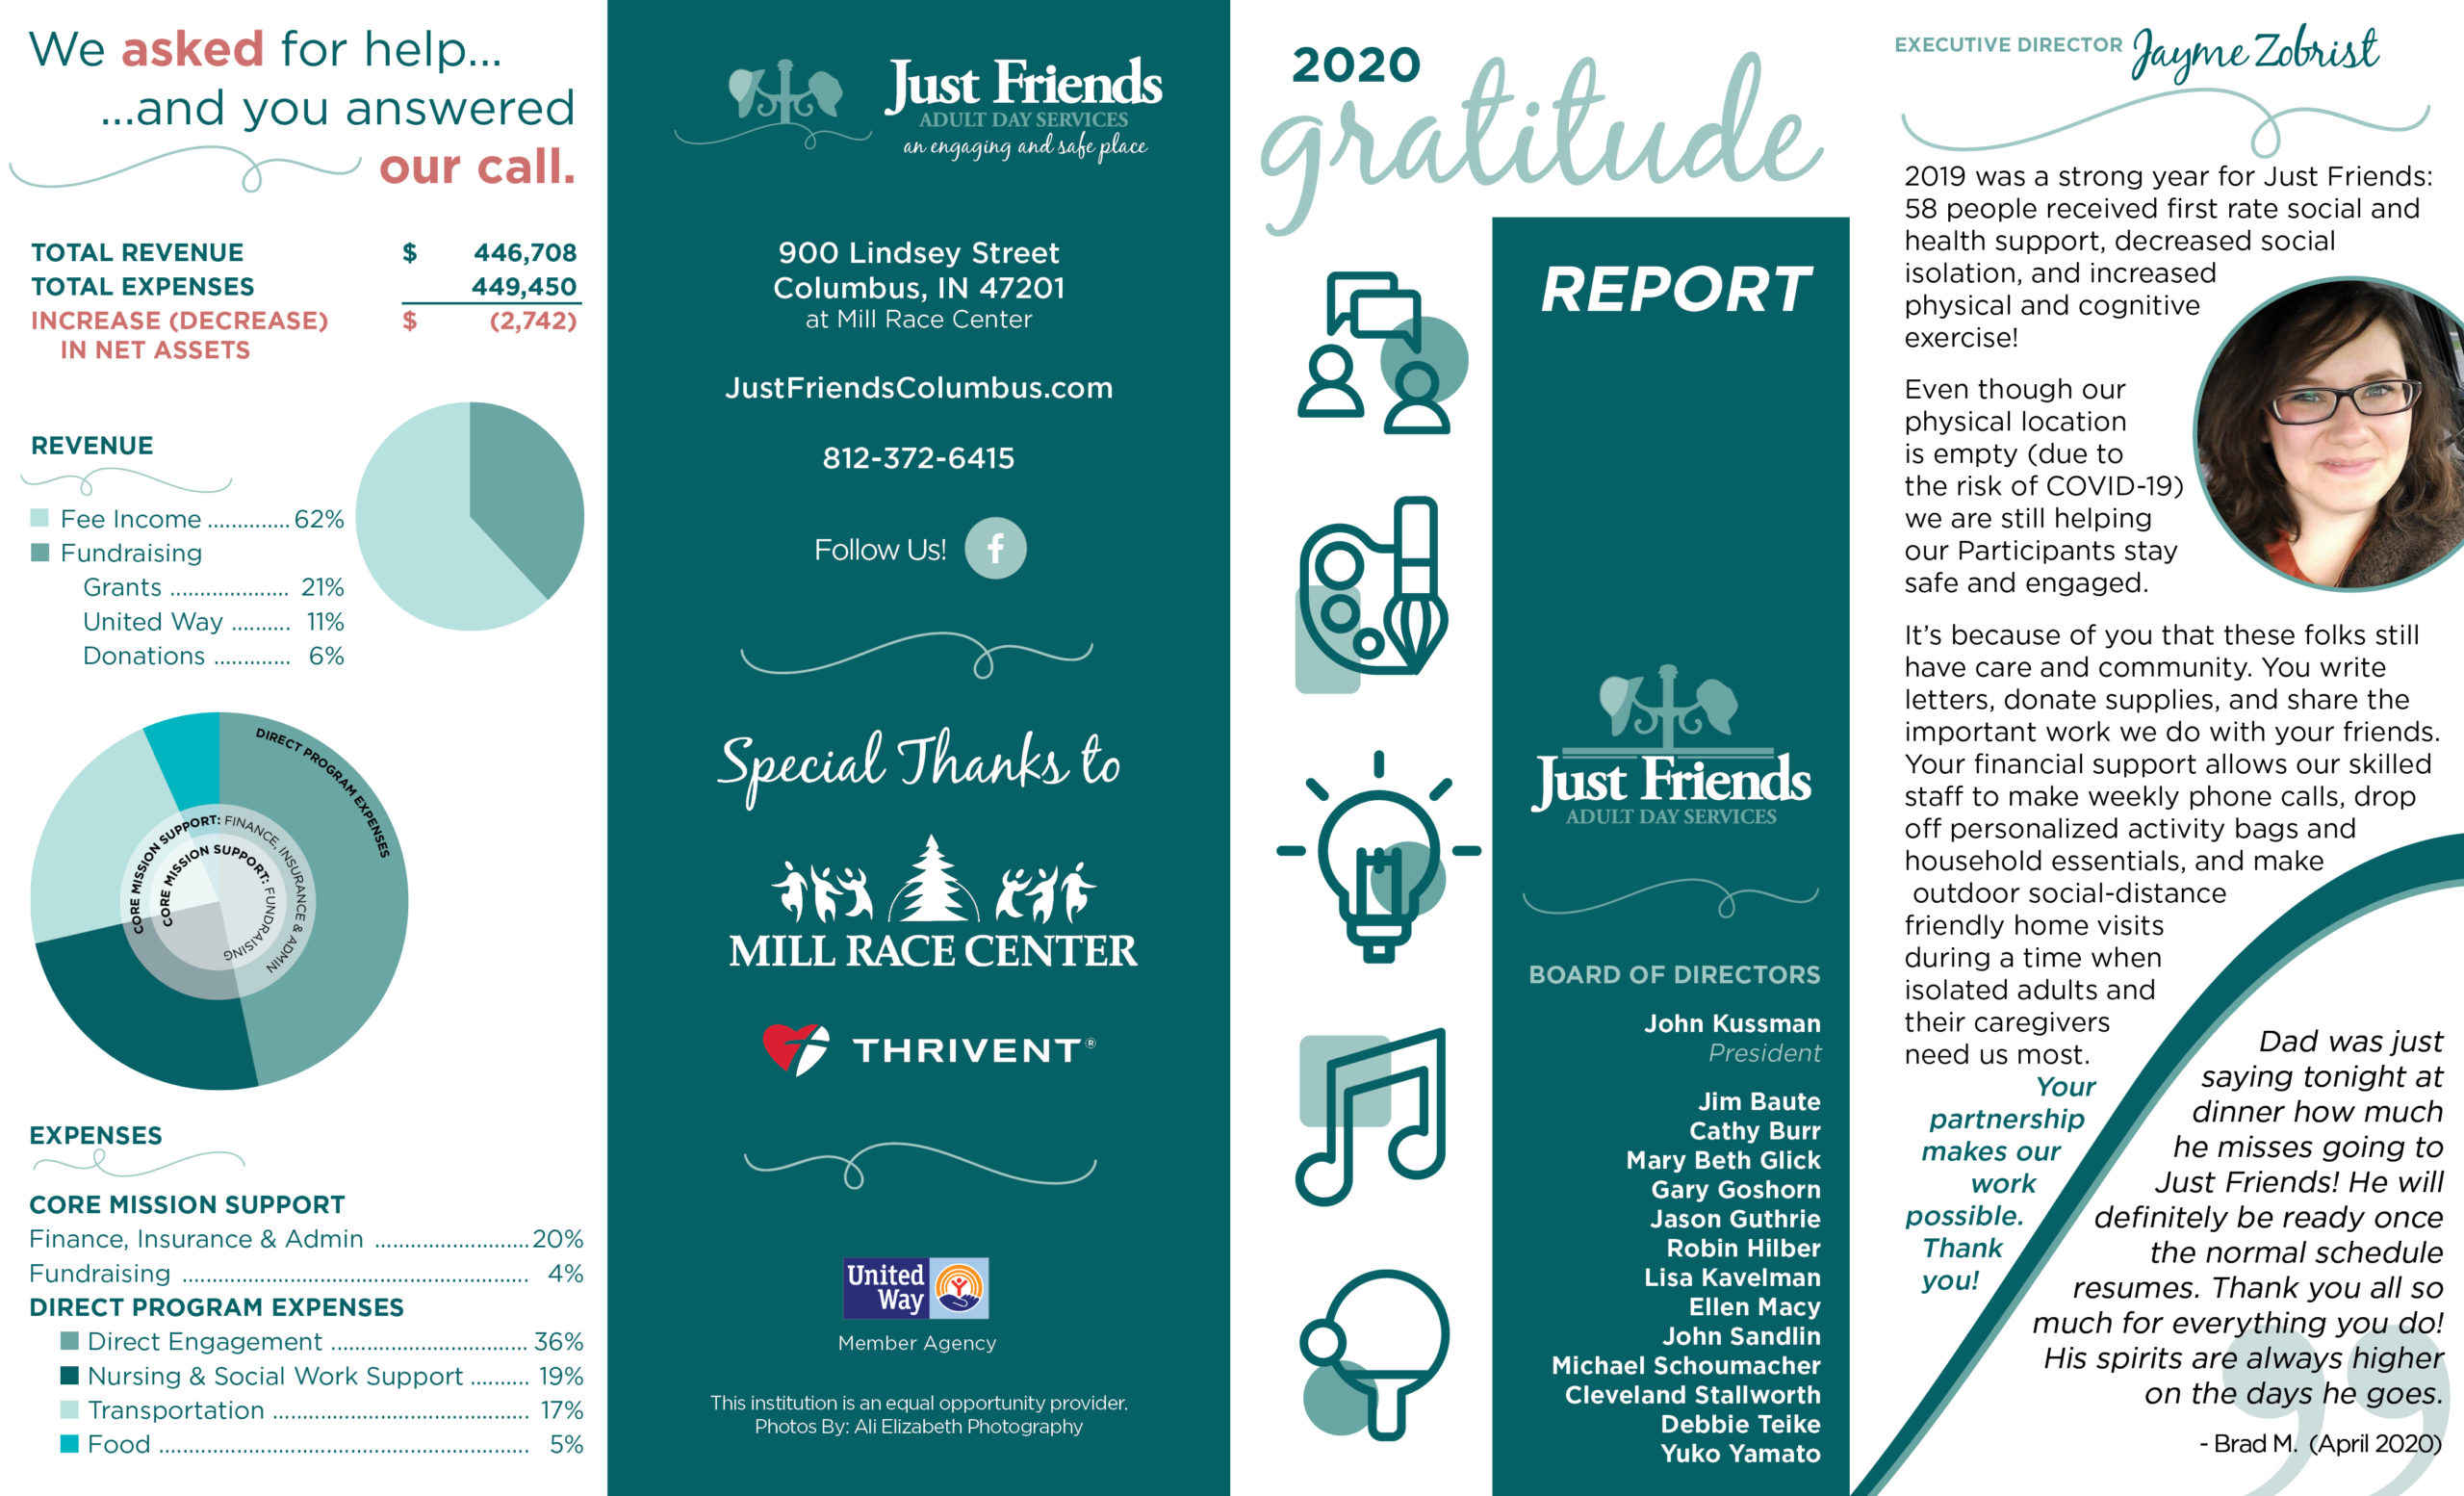 just-friends-annual-report-graphic